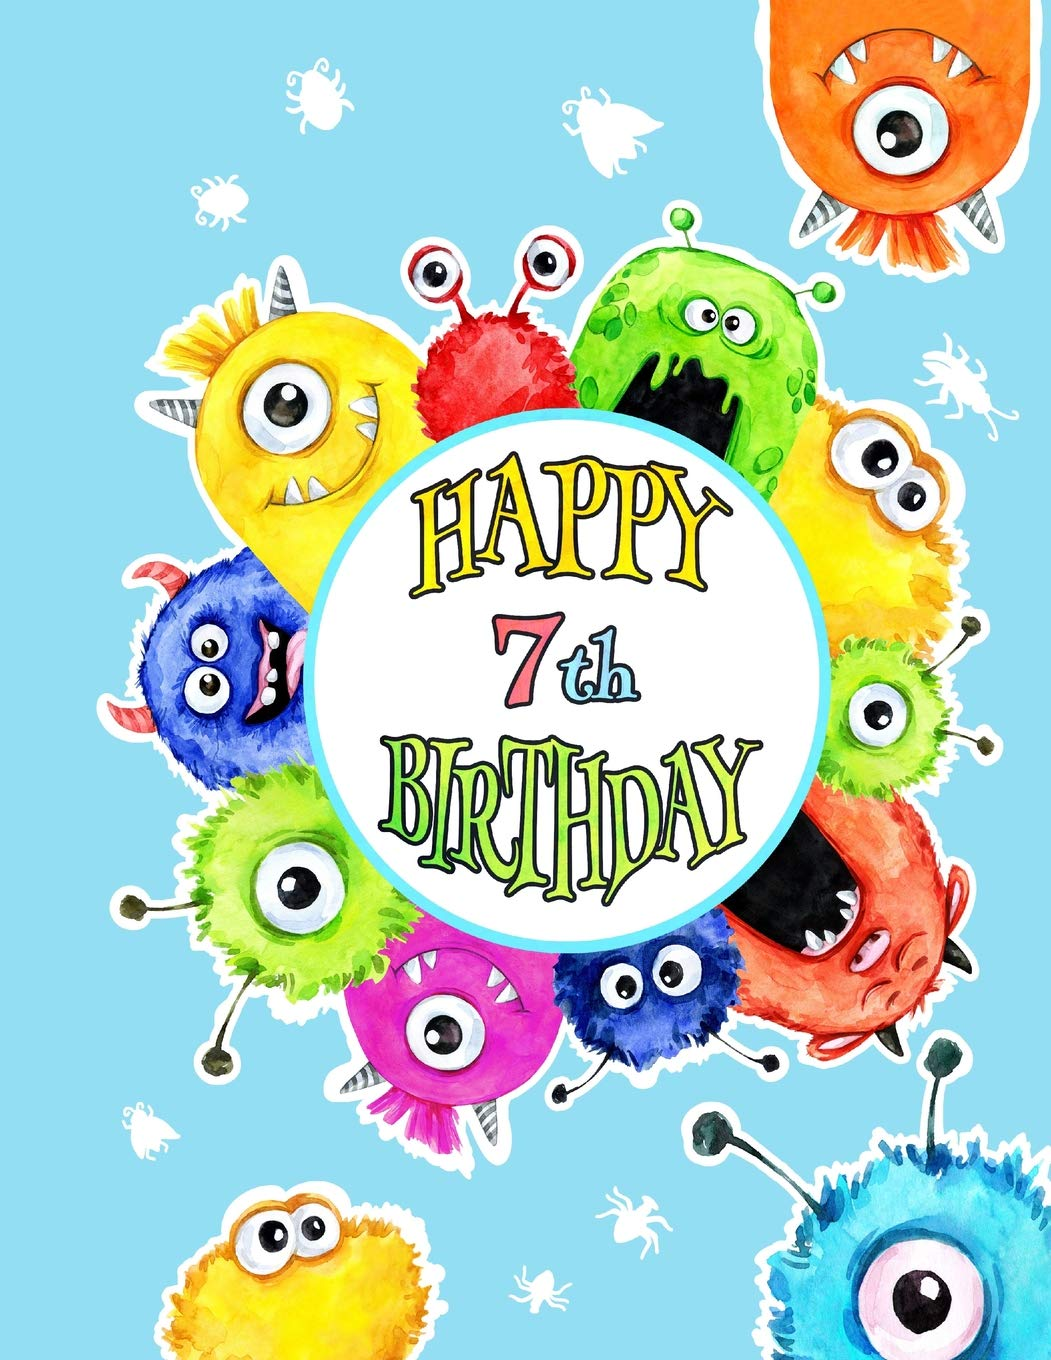 Happy 7th Birthday Fun Monster Themed Birthday Book For Kids With Lined Pages That Can Be Used As A Journal Or Notebook Art Black River 9781724007742 Books Amazon Ca